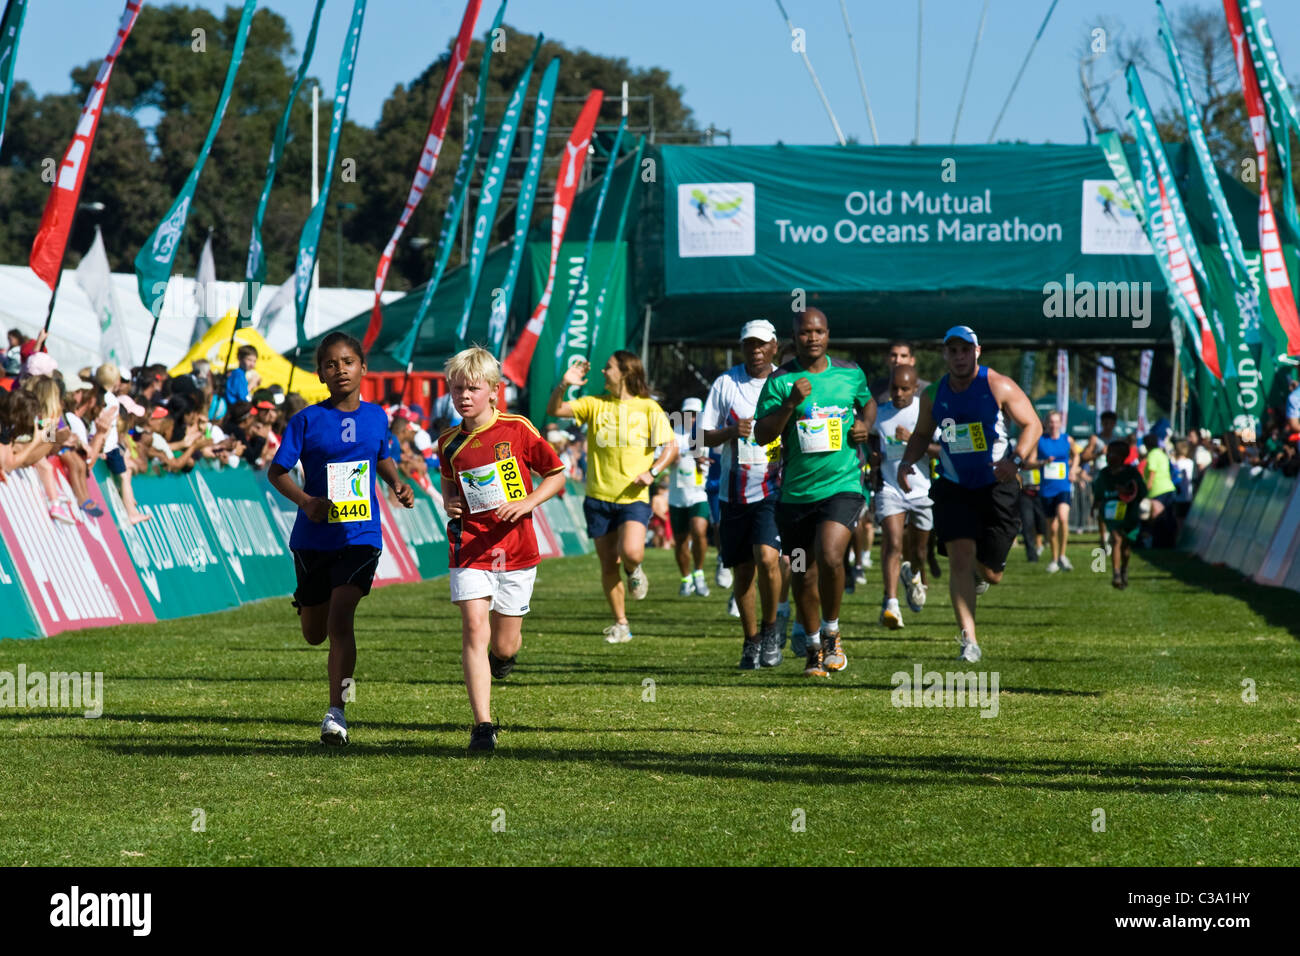 Teenagers at the finish of the 5km Fun Run, Two Oceans Marathon, Cape Town, South Africa - Stock Image